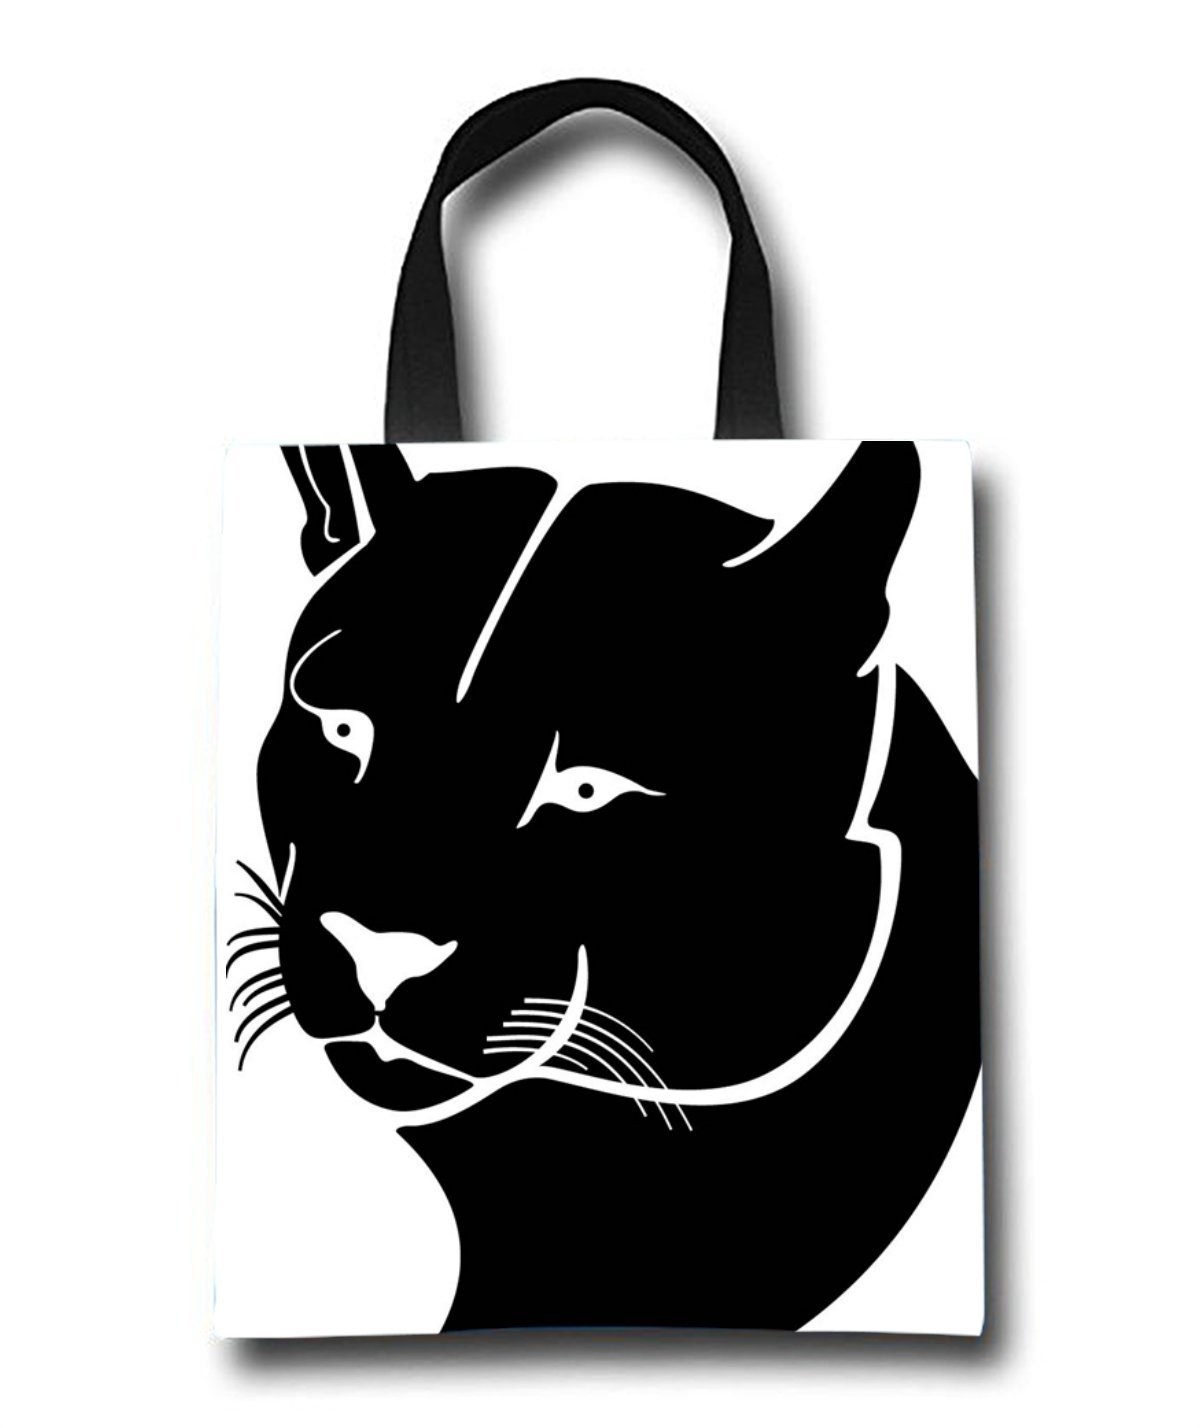 Black Cheetah Beach Tote Bag - Toy Tote Bag - Large Lightweight Market, Grocery & Picnic